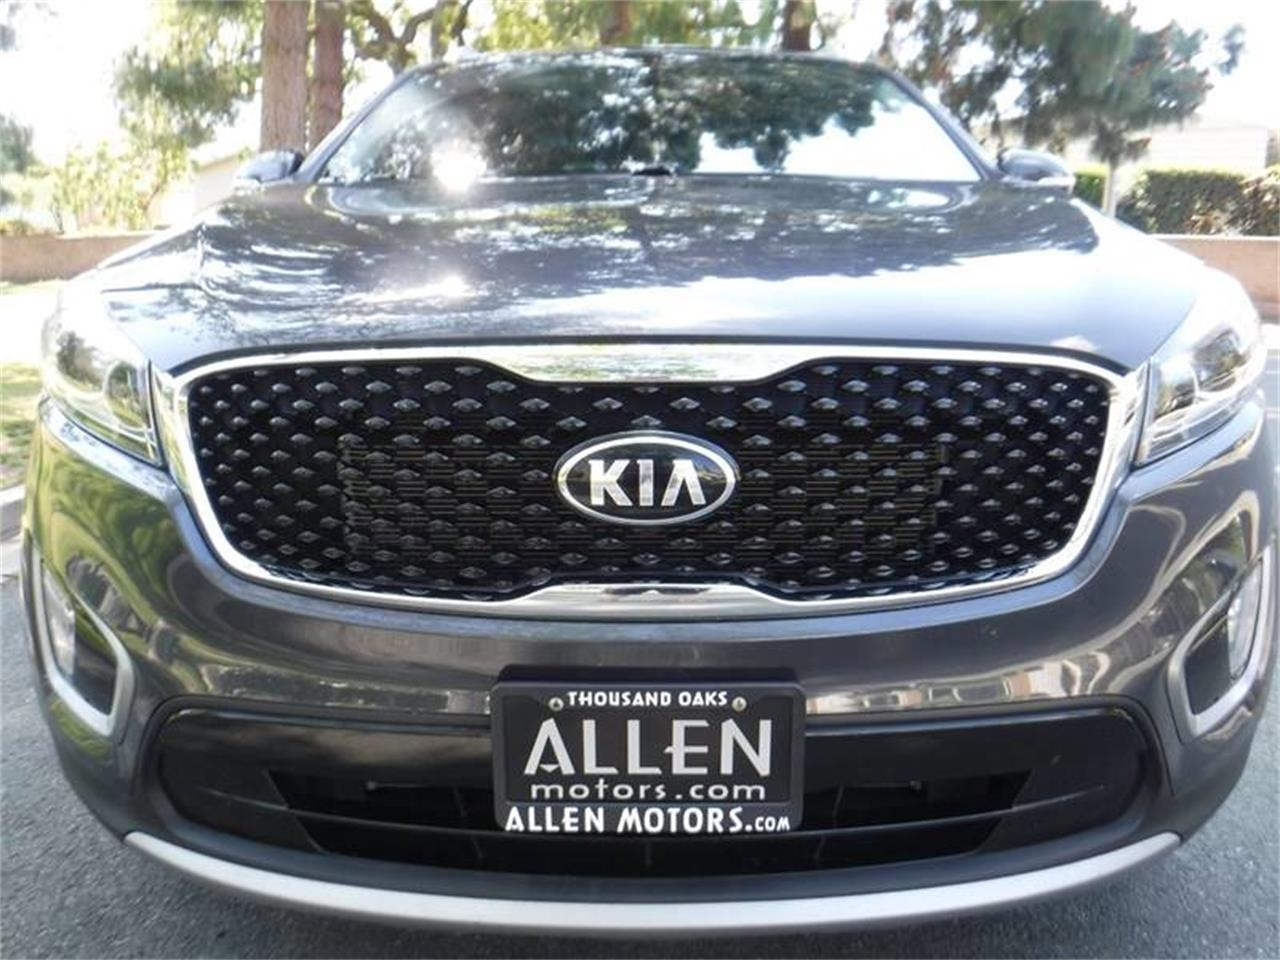 Large Picture of '16 Kia Sorento - $20,995.00 Offered by Allen Motors, Inc. - PSCI